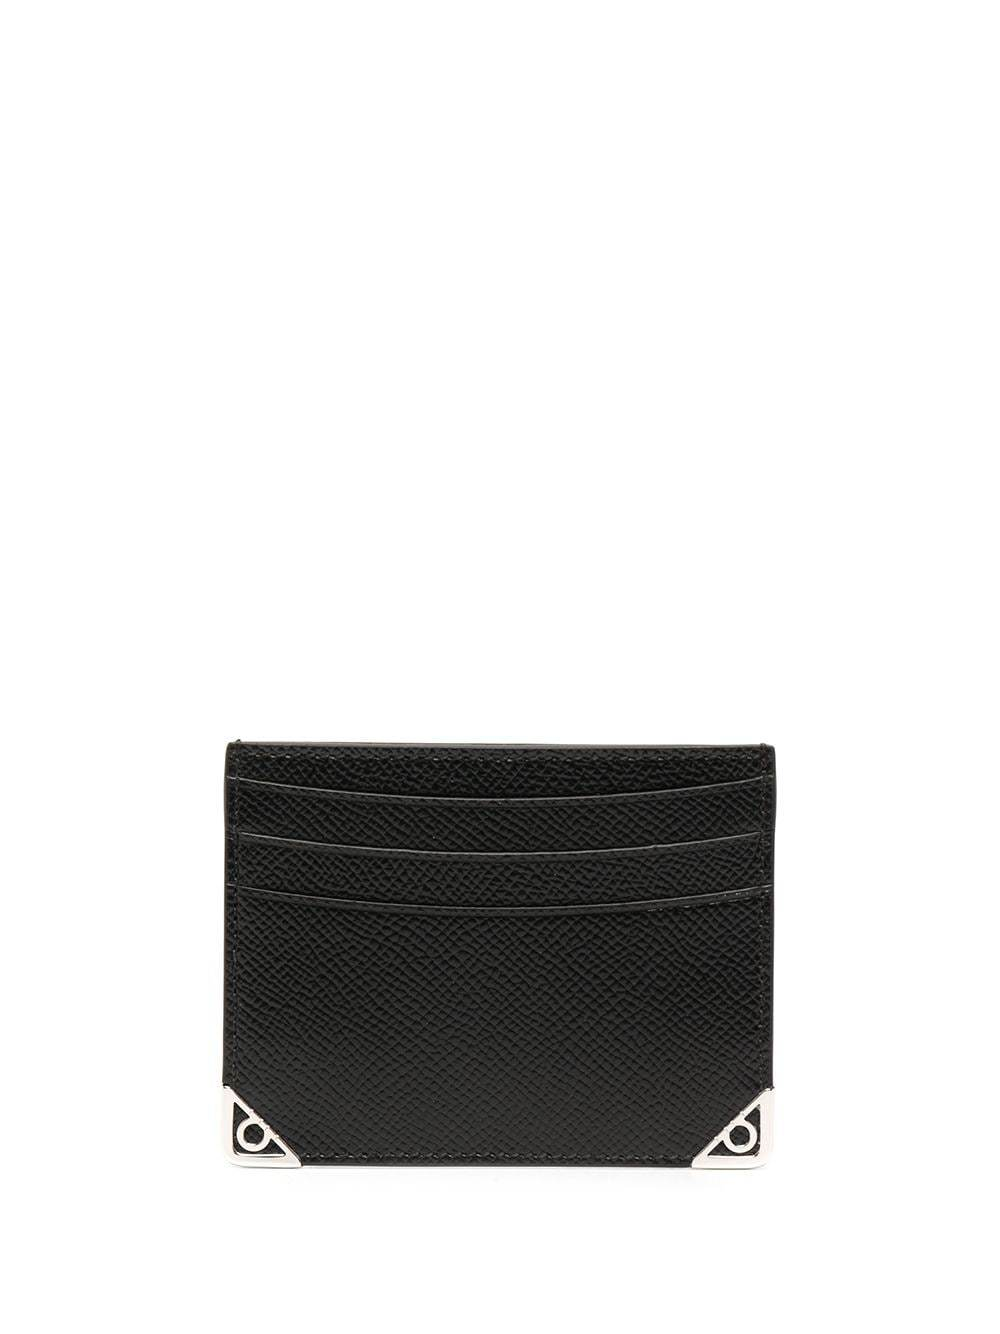 SALVATORE FERRAGAMO Gancini Corner Detail Card Holder Black